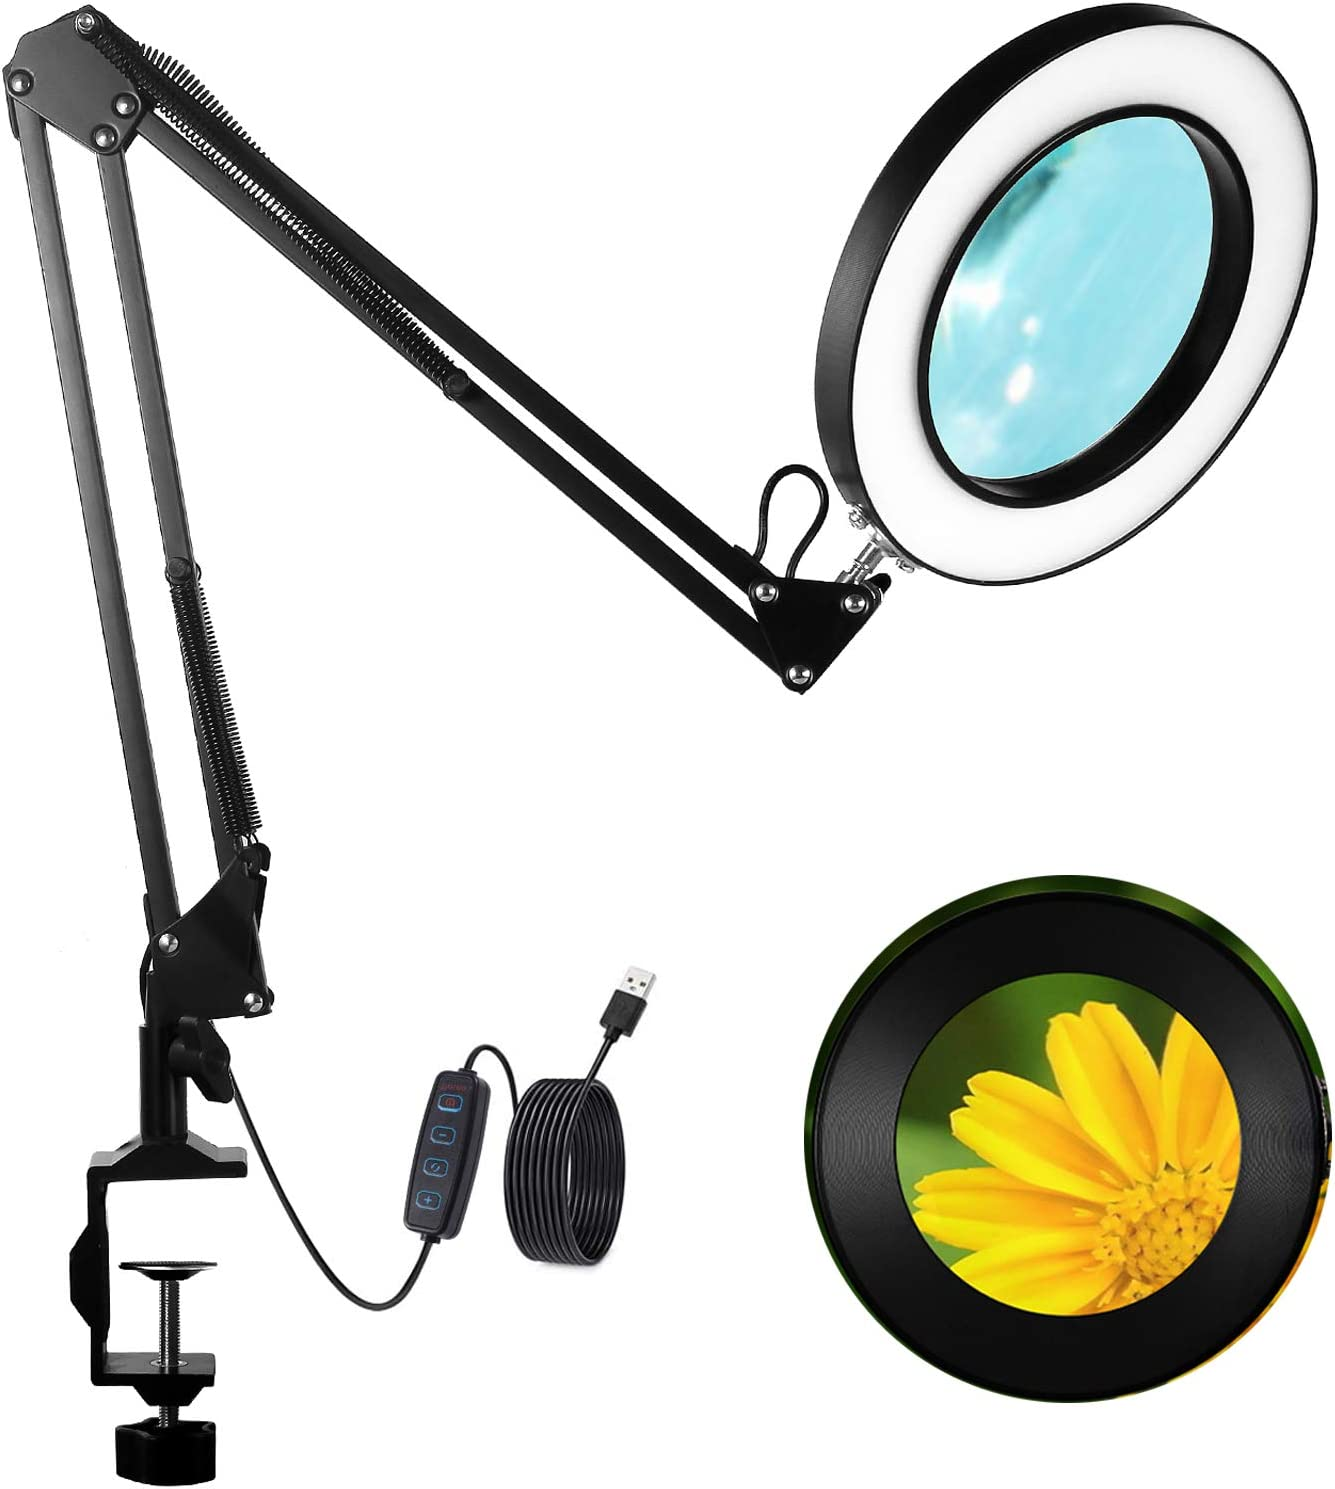 GEYOTAR LED Super-cheap Magnifying Lamp Light Clamp Max 76% OFF with Desk Magnifier